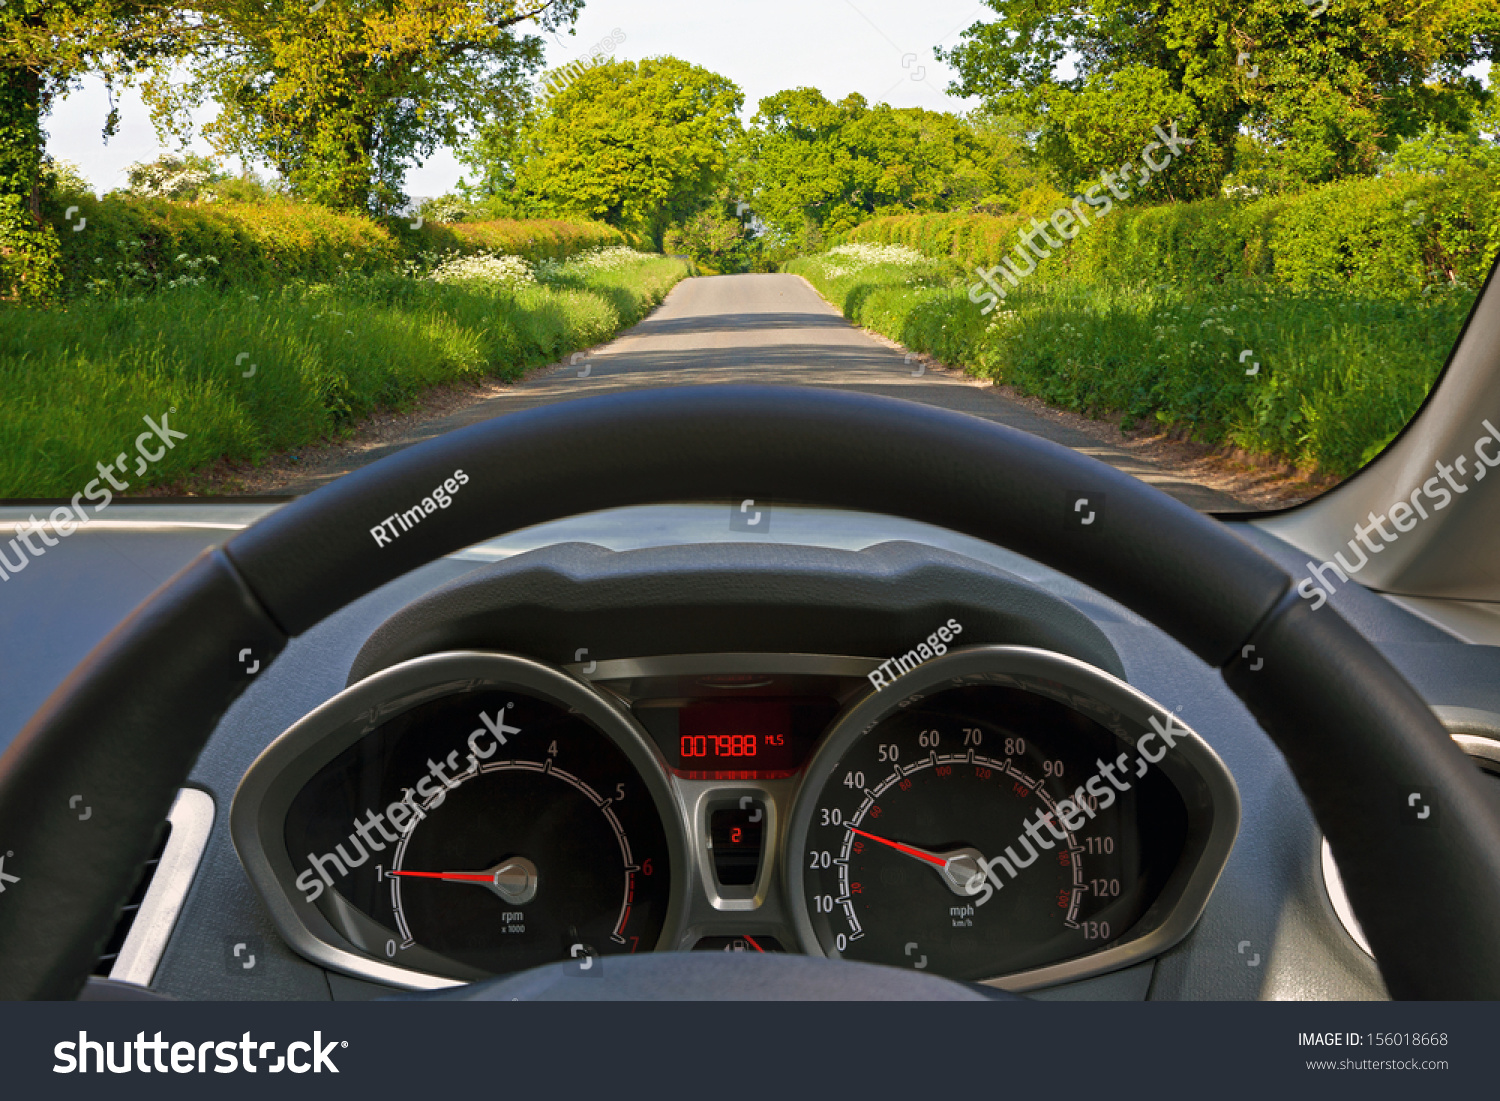 Behind The Steering Wheel : View behind steering wheel car whilst stock photo